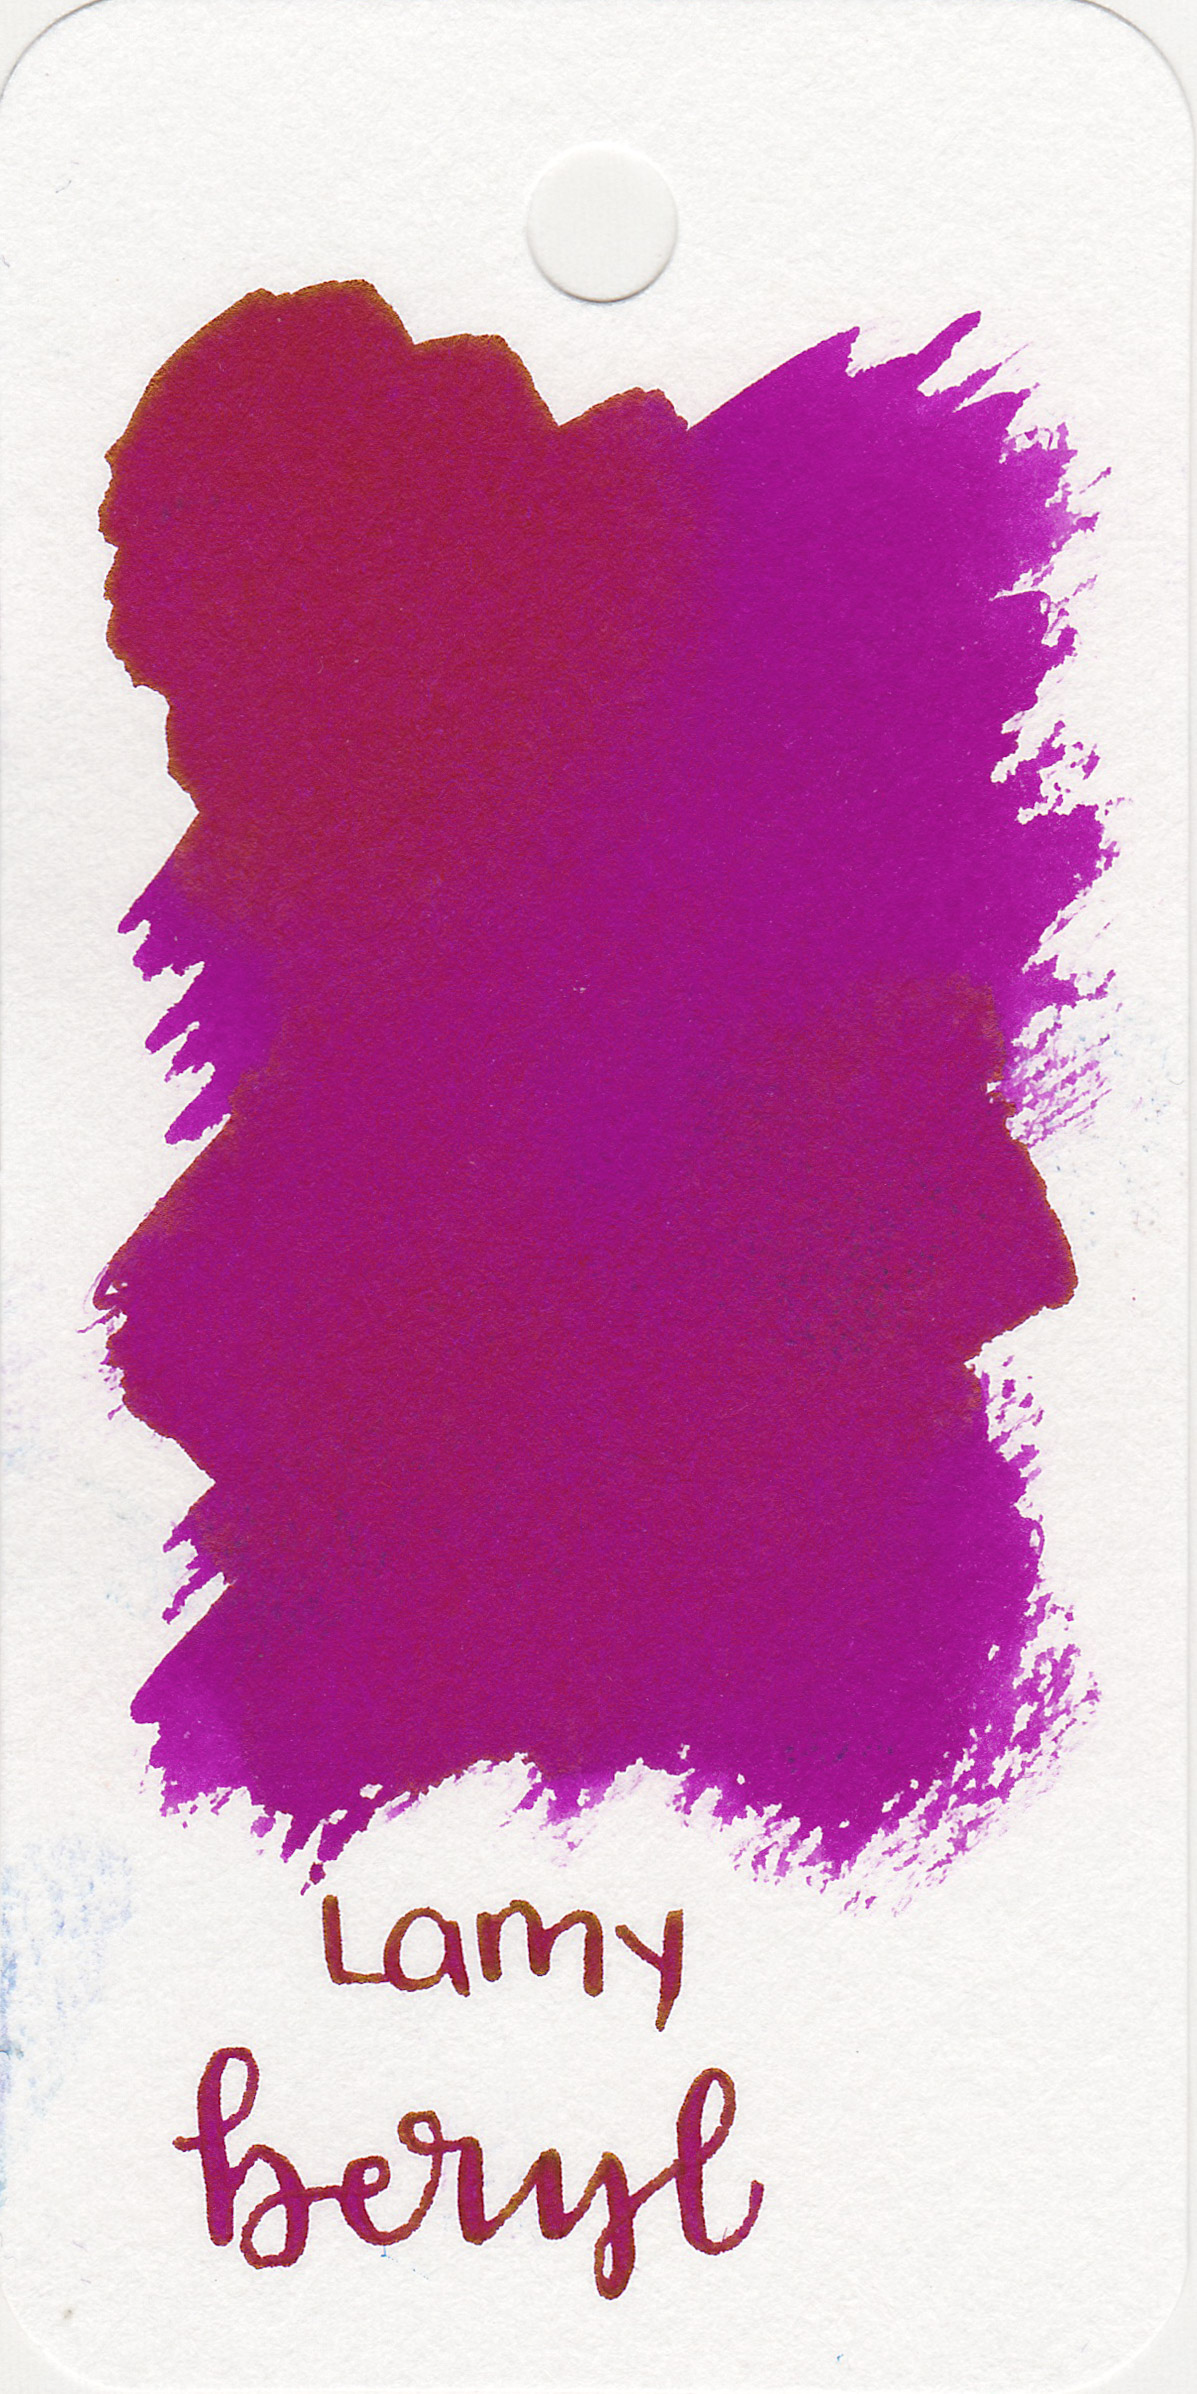 The color: - Beryl leans a bit more toward pink than purple, but definitely a bright magenta.